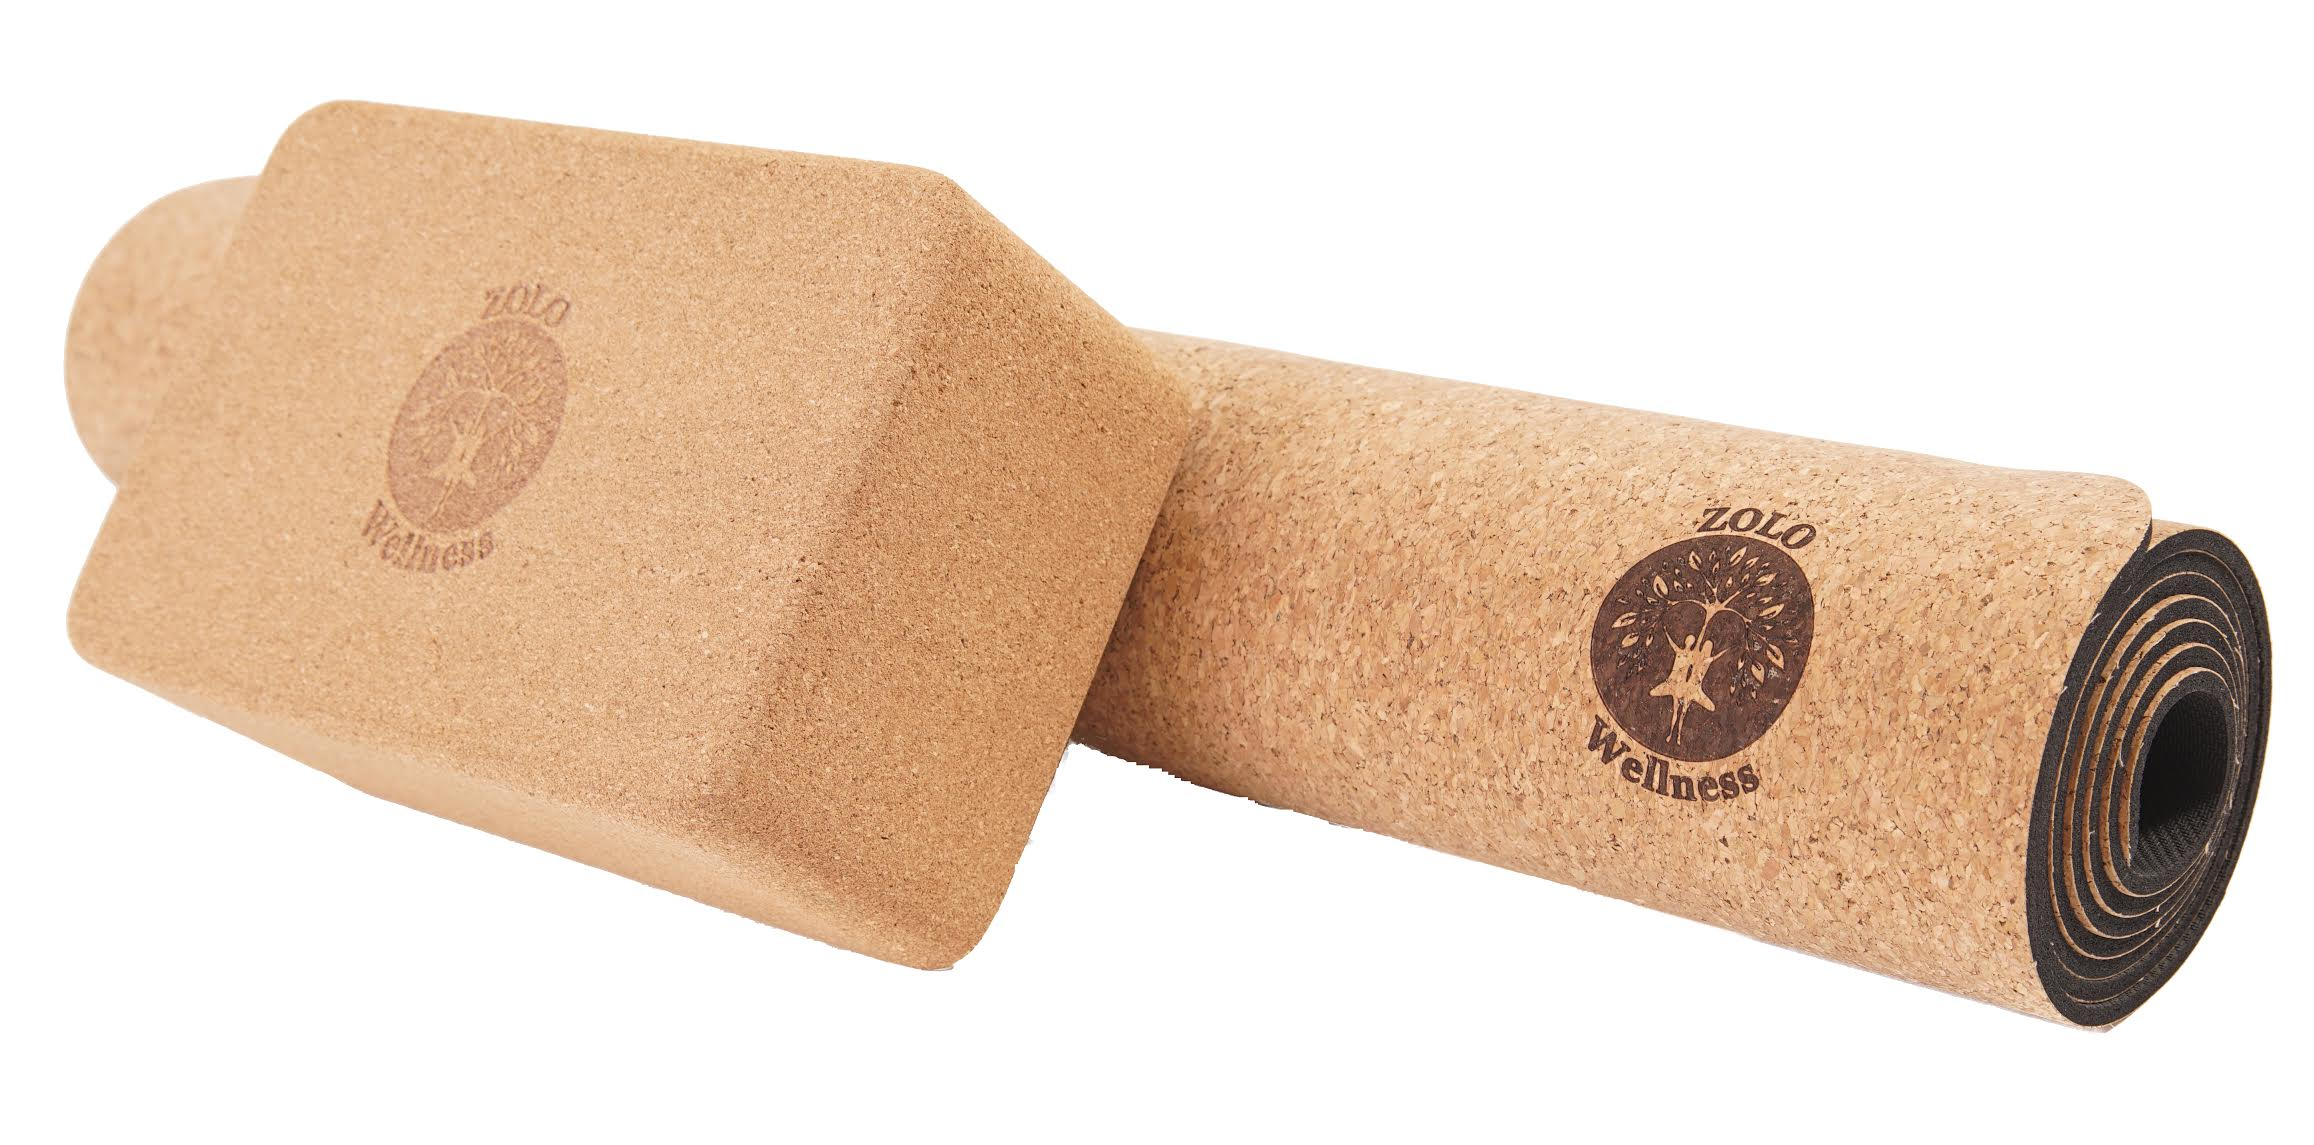 ZOLO Active Mat – Crowdfunding the Best Eco-friendly Cork Yoga Mat in Asia